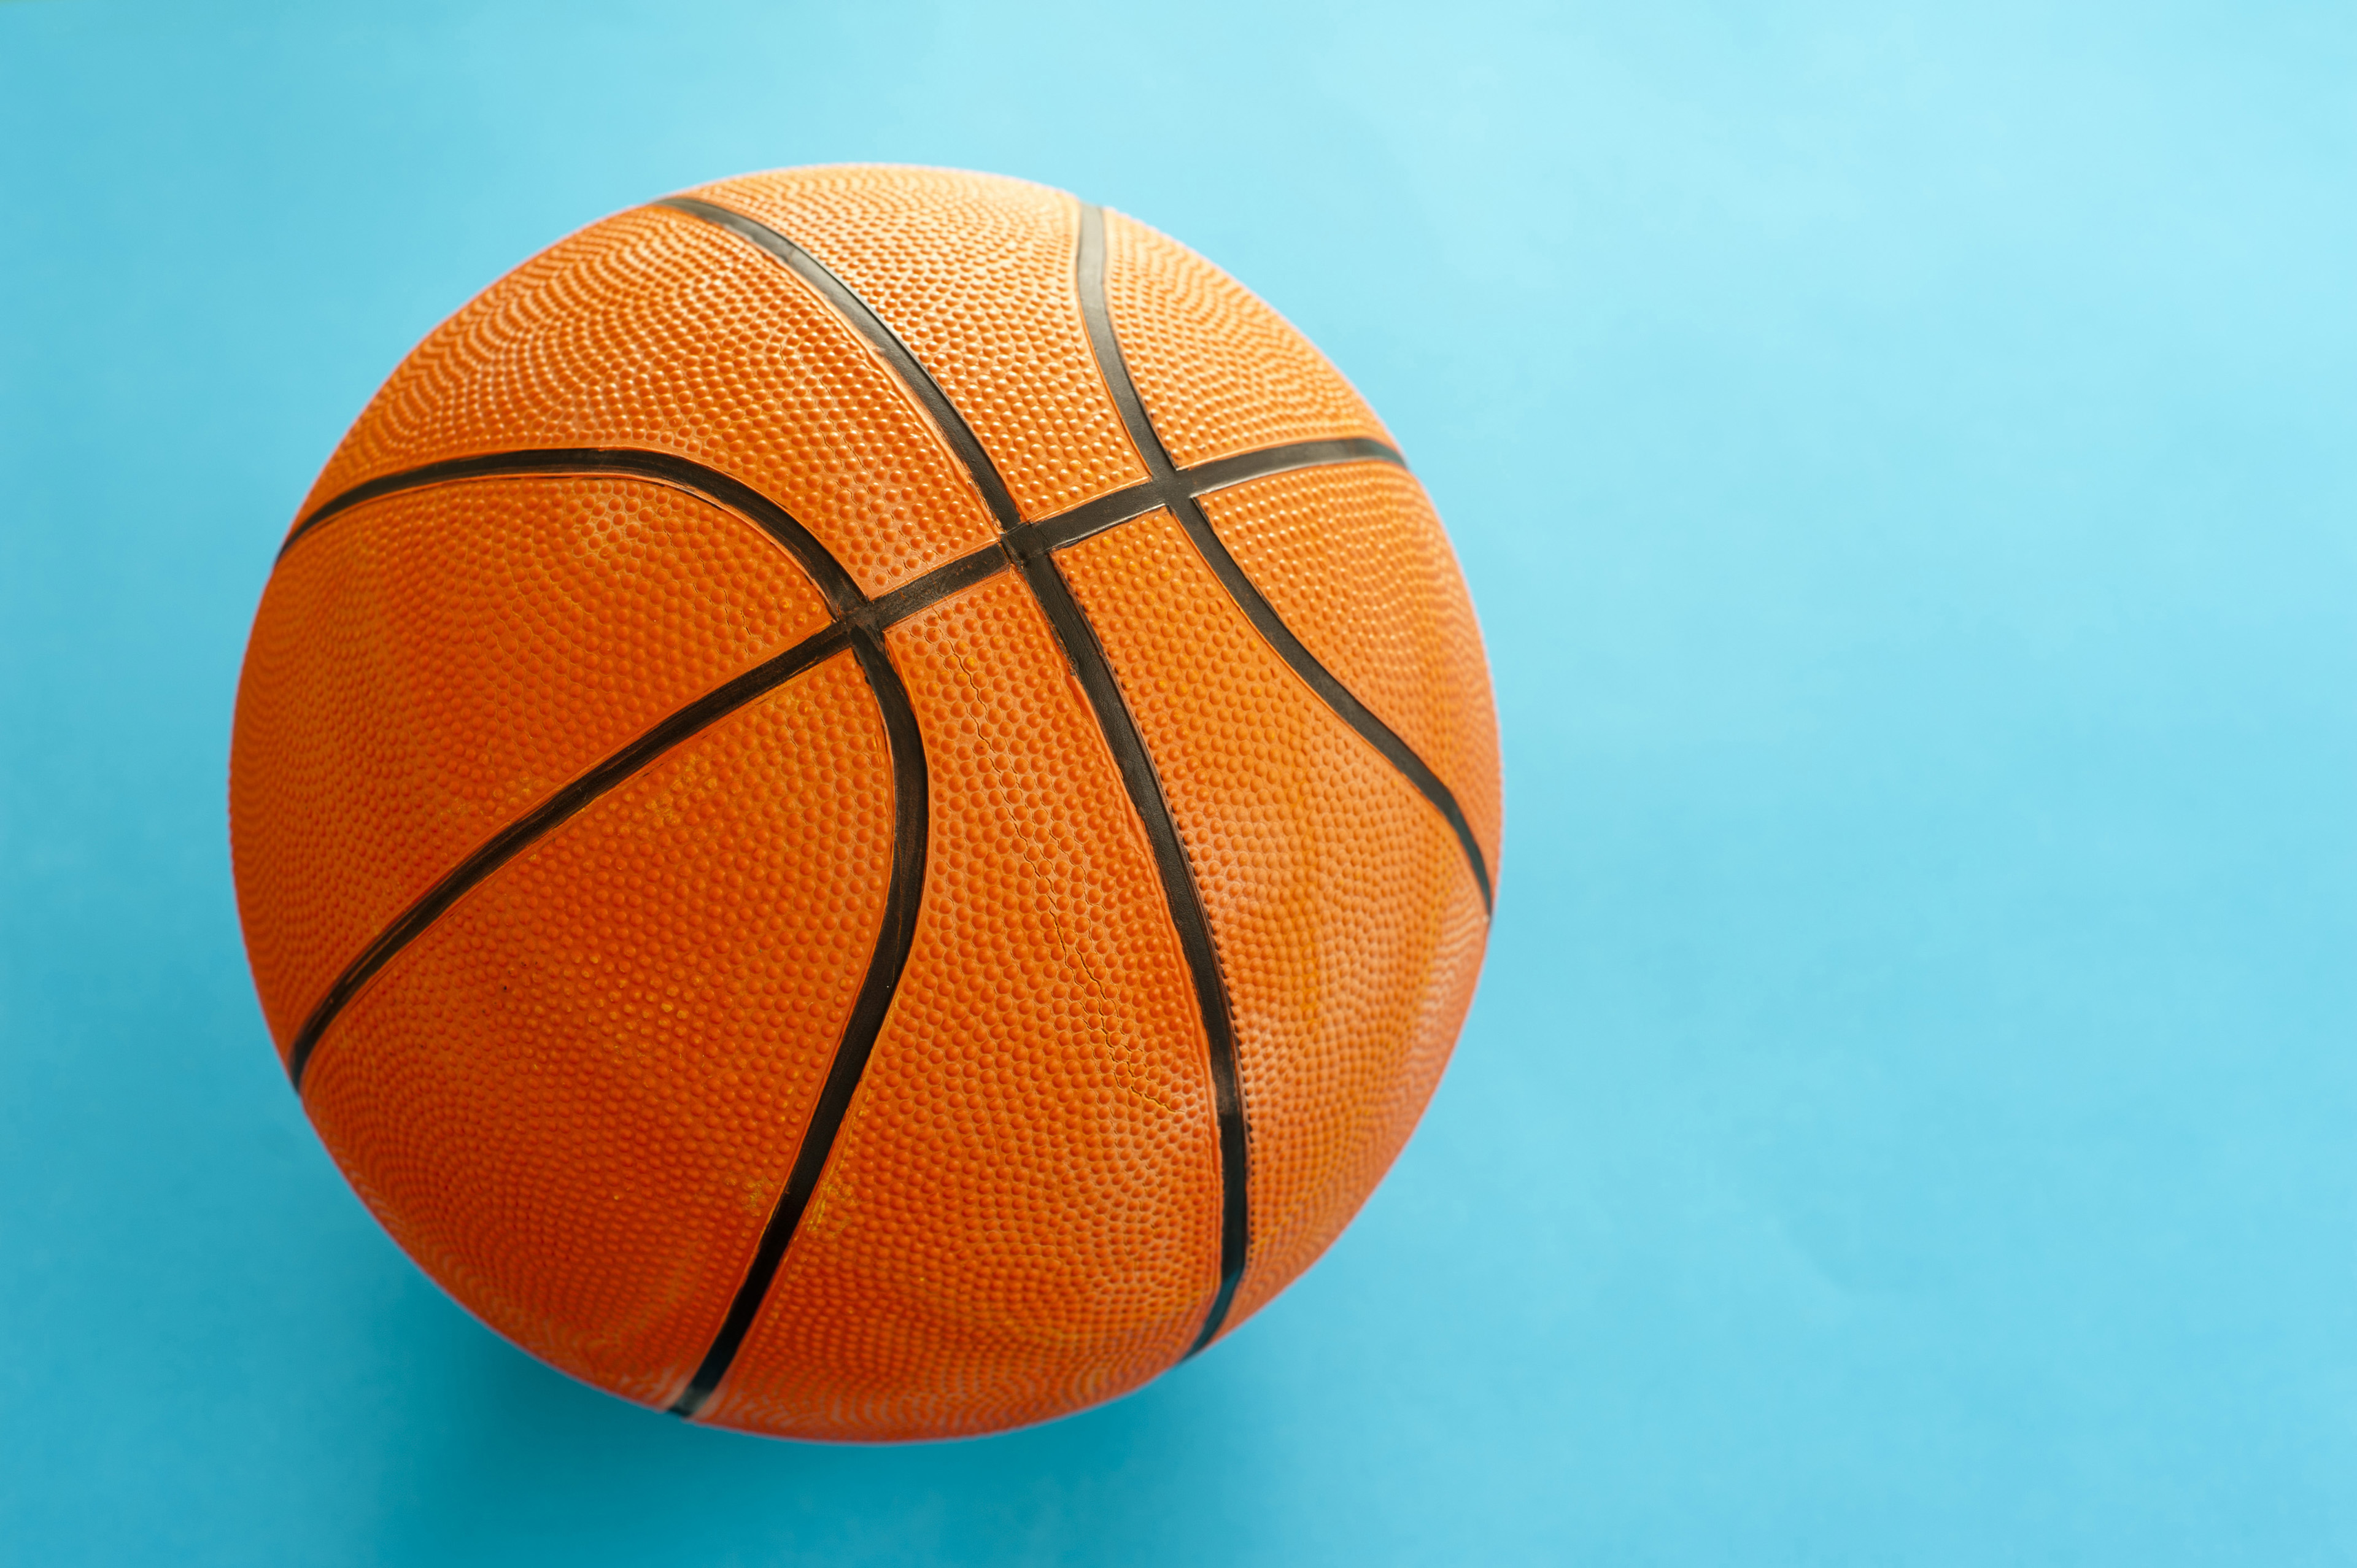 Colorful orange basketball isolated on a turquoise blue background with copyspace to the right in a sports concept